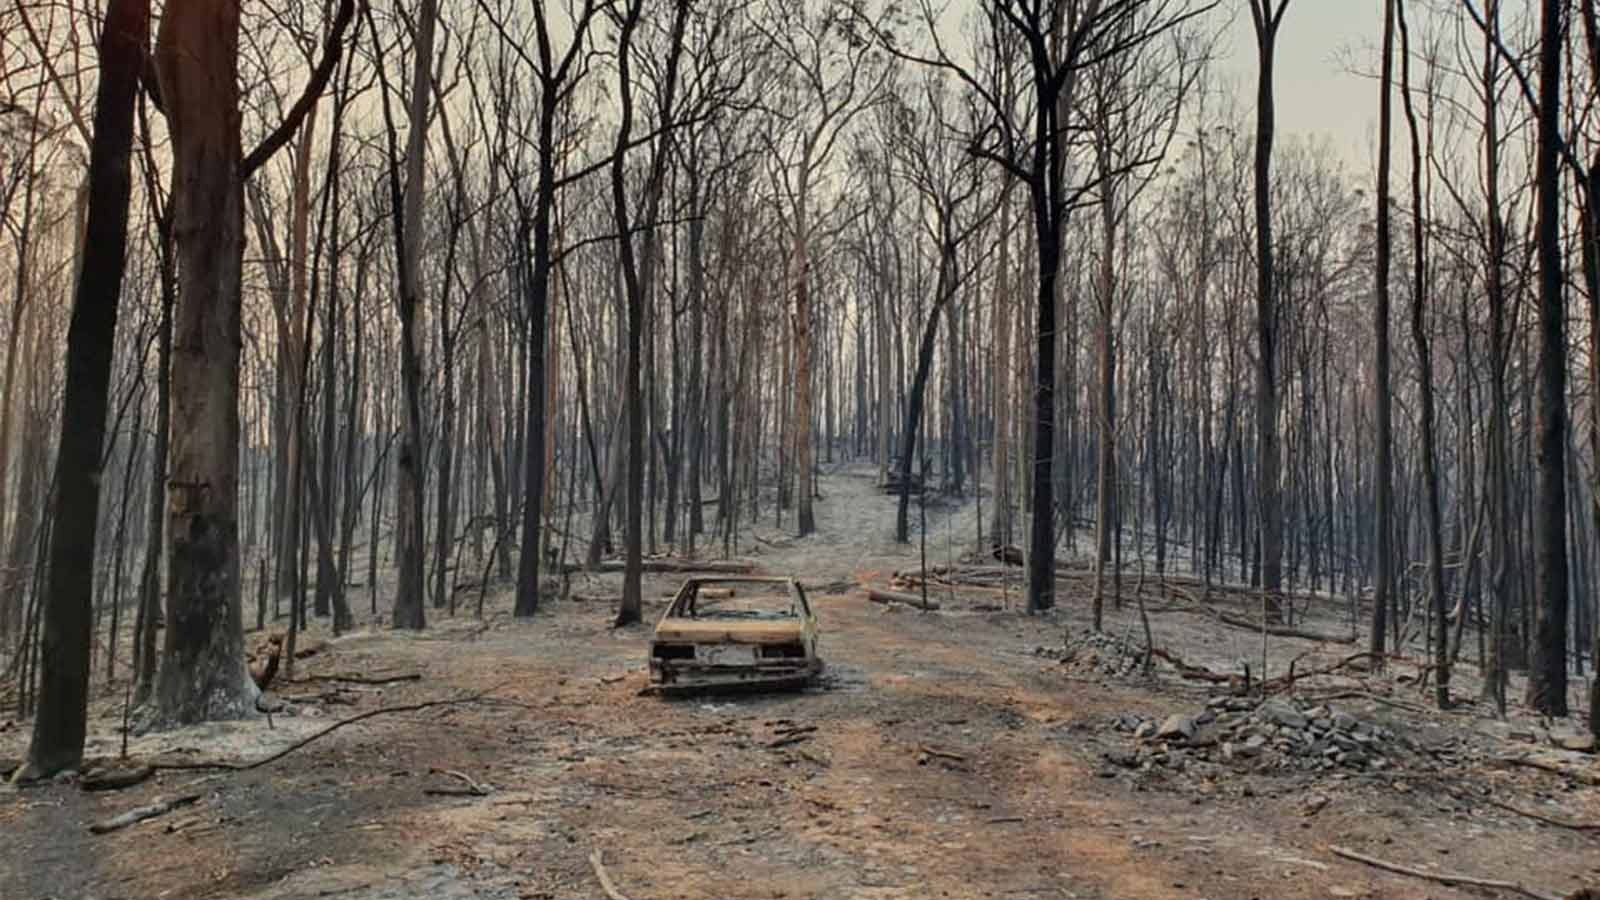 Burned out car surrounded by gum trees in the aftermath of the Australian wildfires